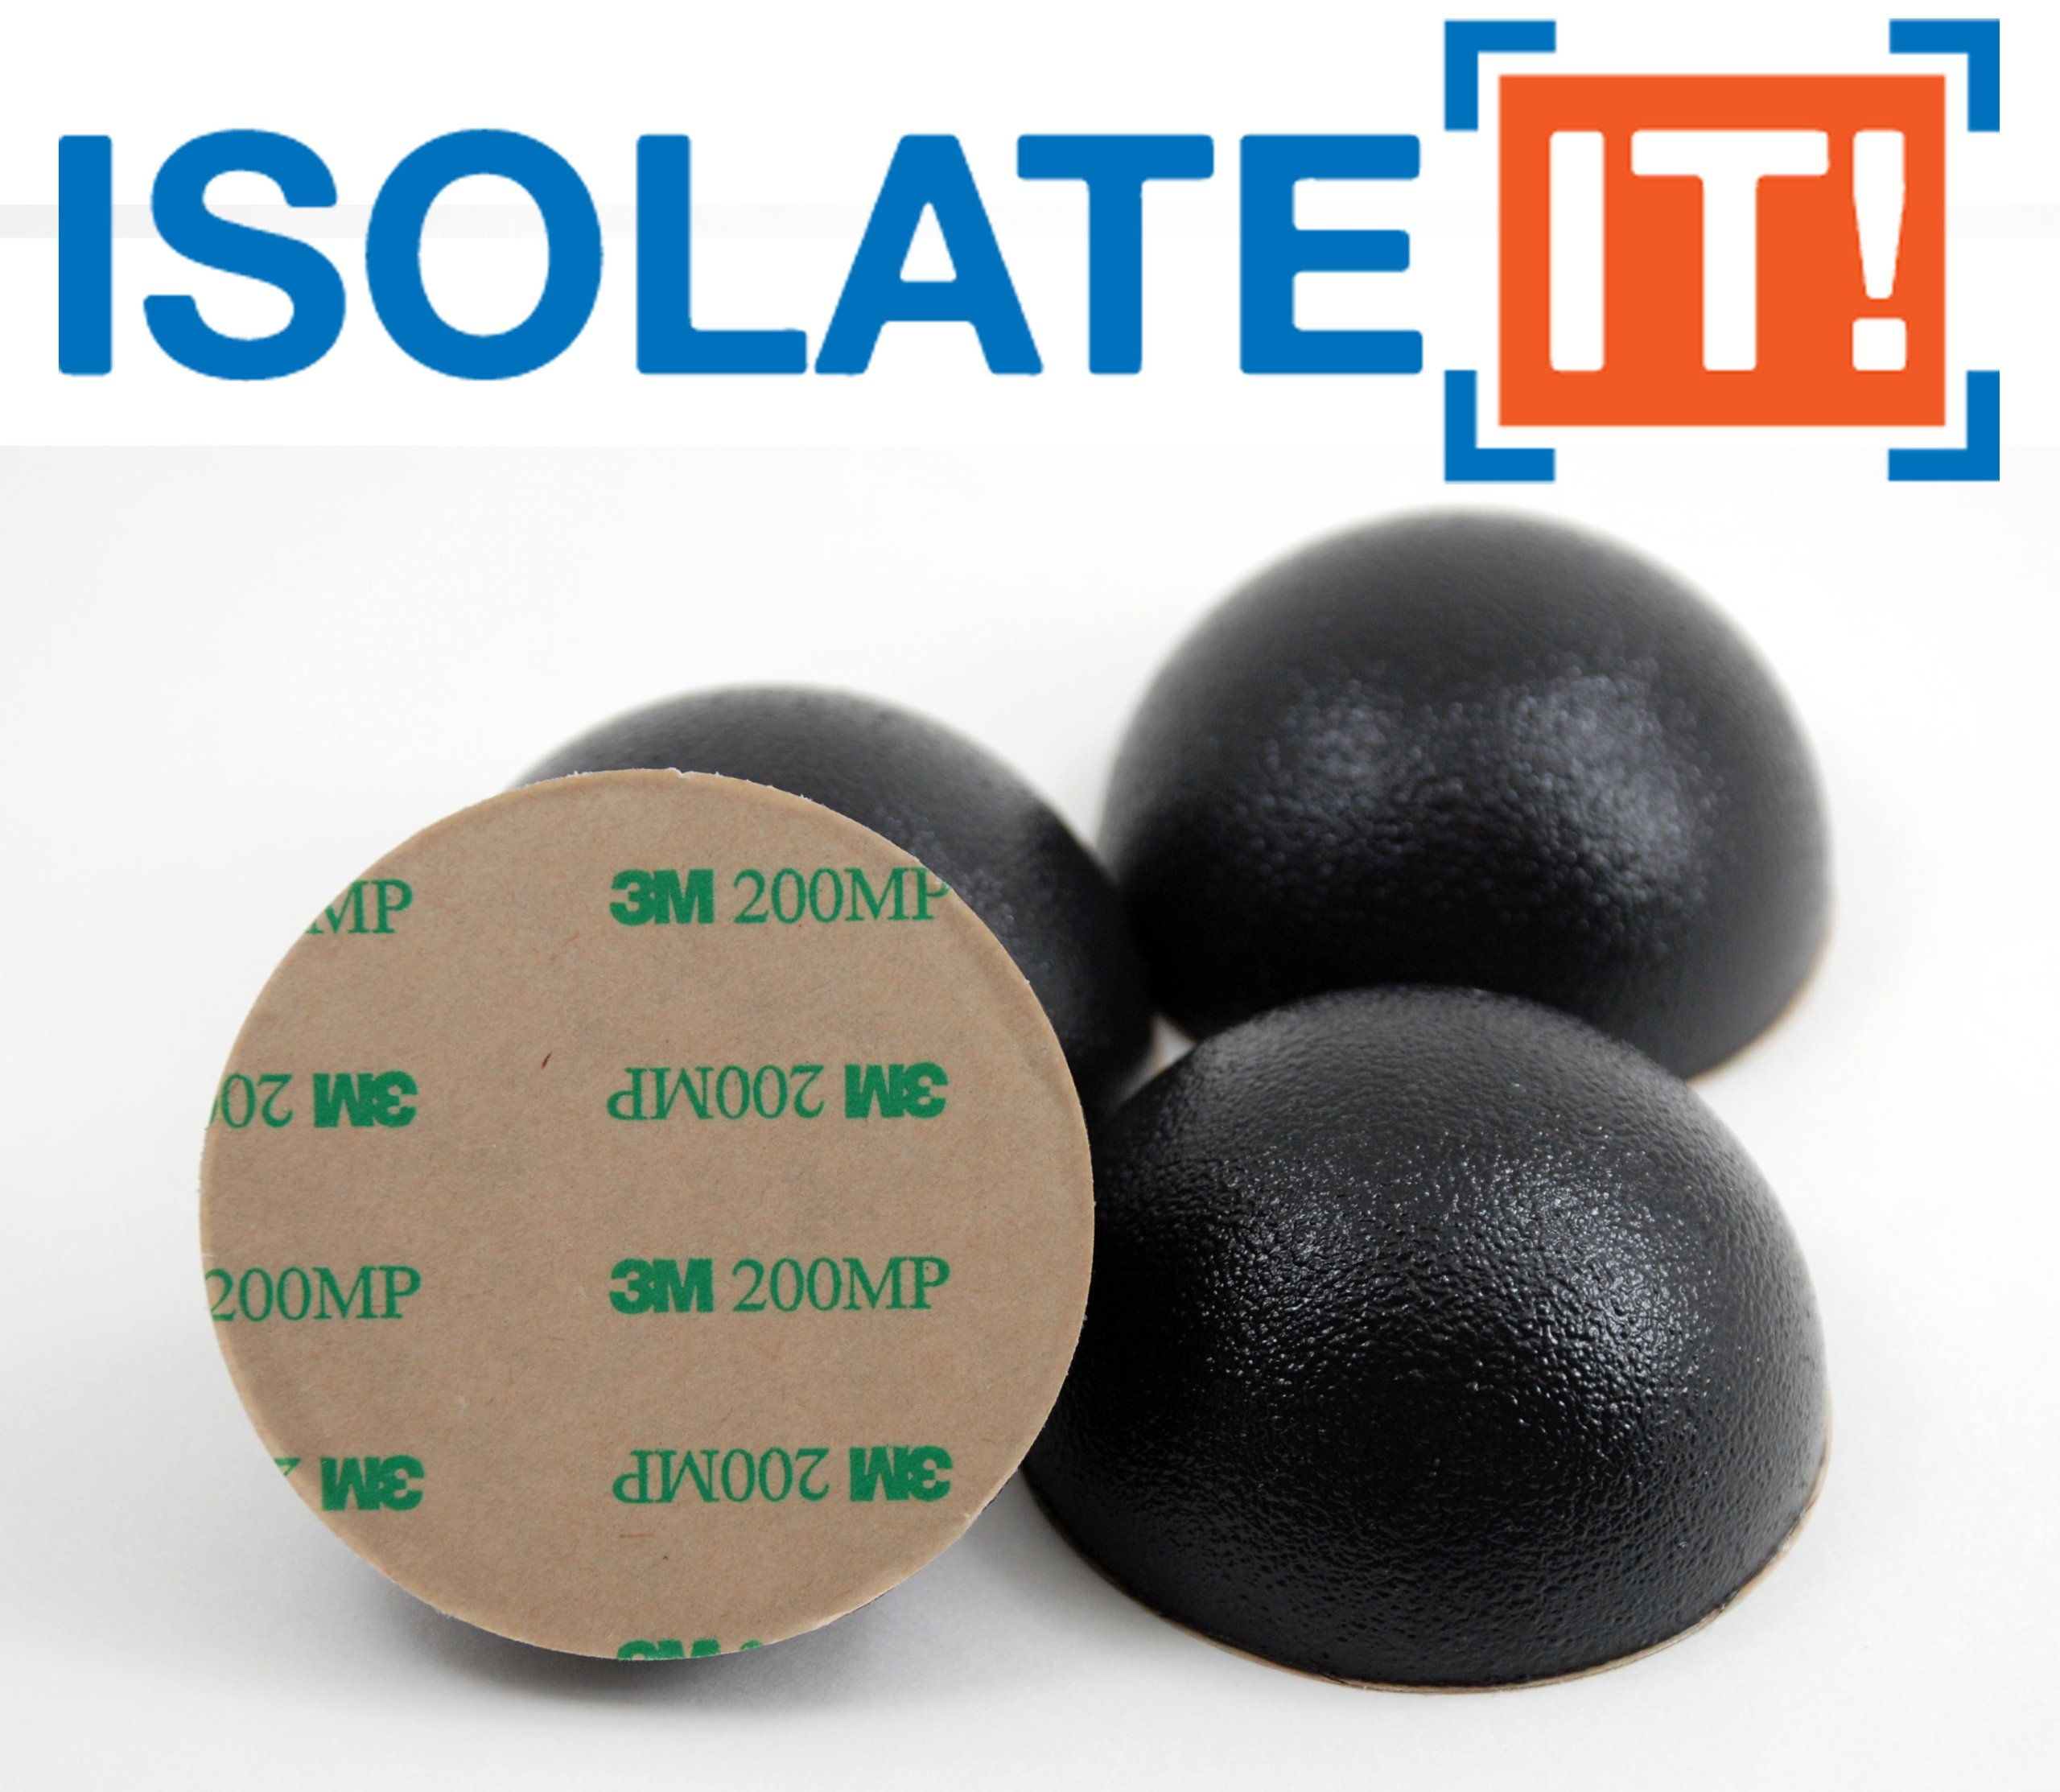 2.5'' Dia Sorbothane Hemisphere Rubber Bumper Non-Skid Feet with Adhesive (4, 30 Duro) by Isolate It! (Image #1)